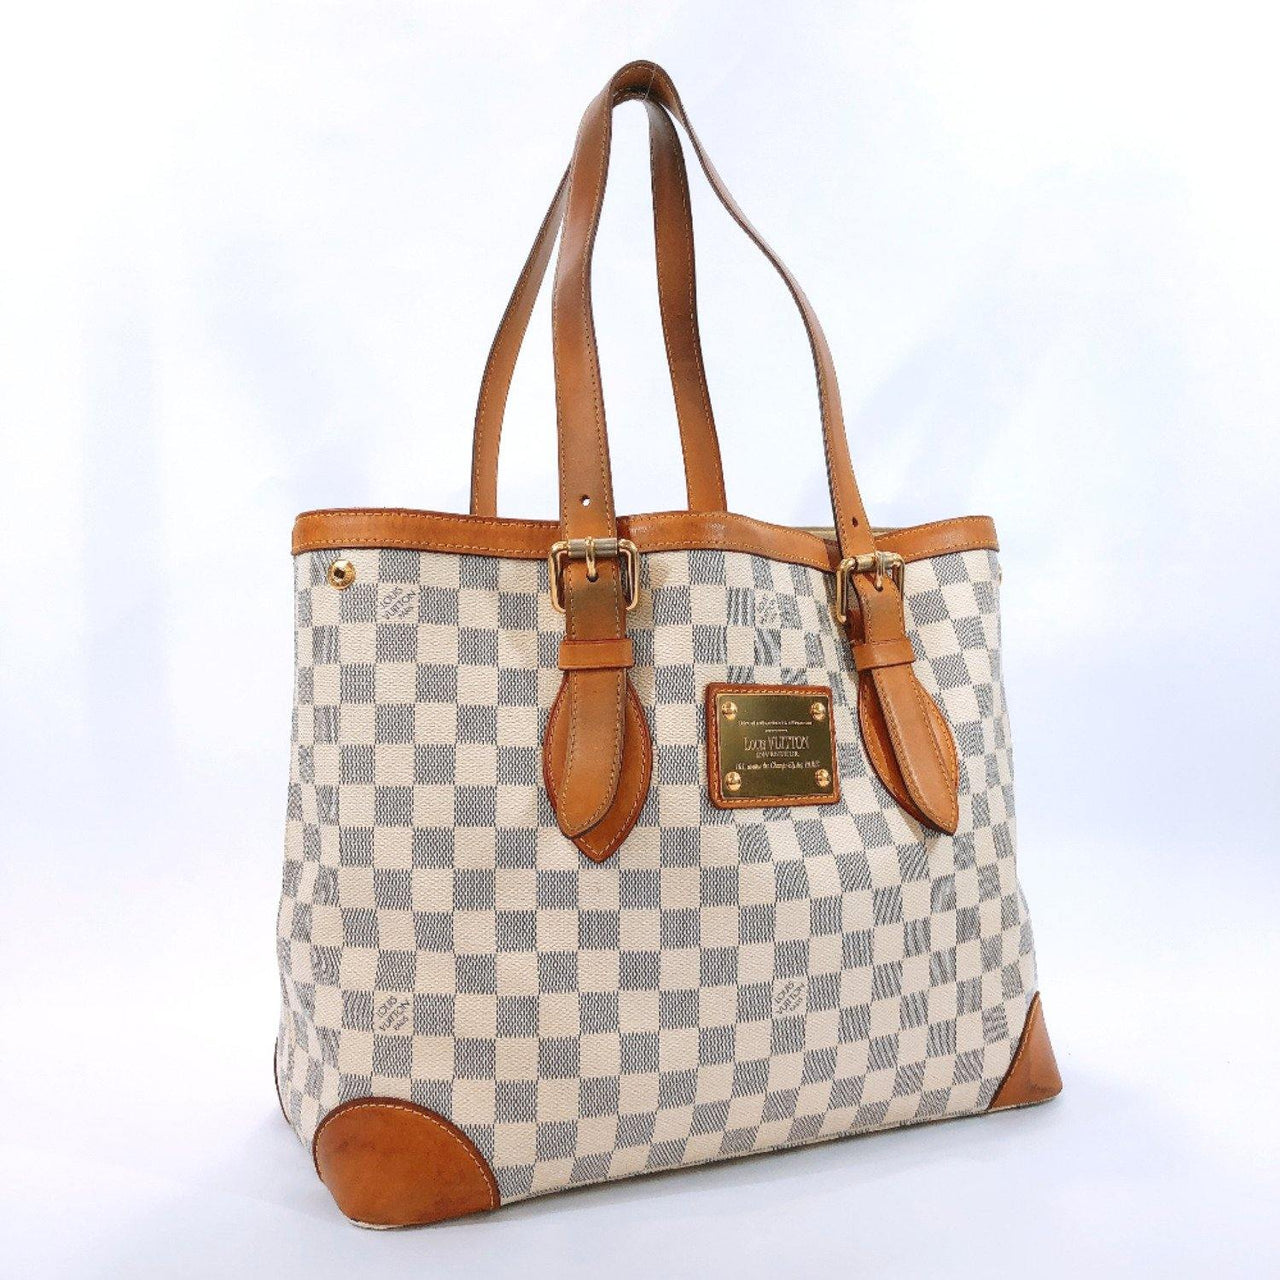 LOUIS VUITTON Tote Bag N51206 Hampstead MM Damier Azur Canvas white Women Used